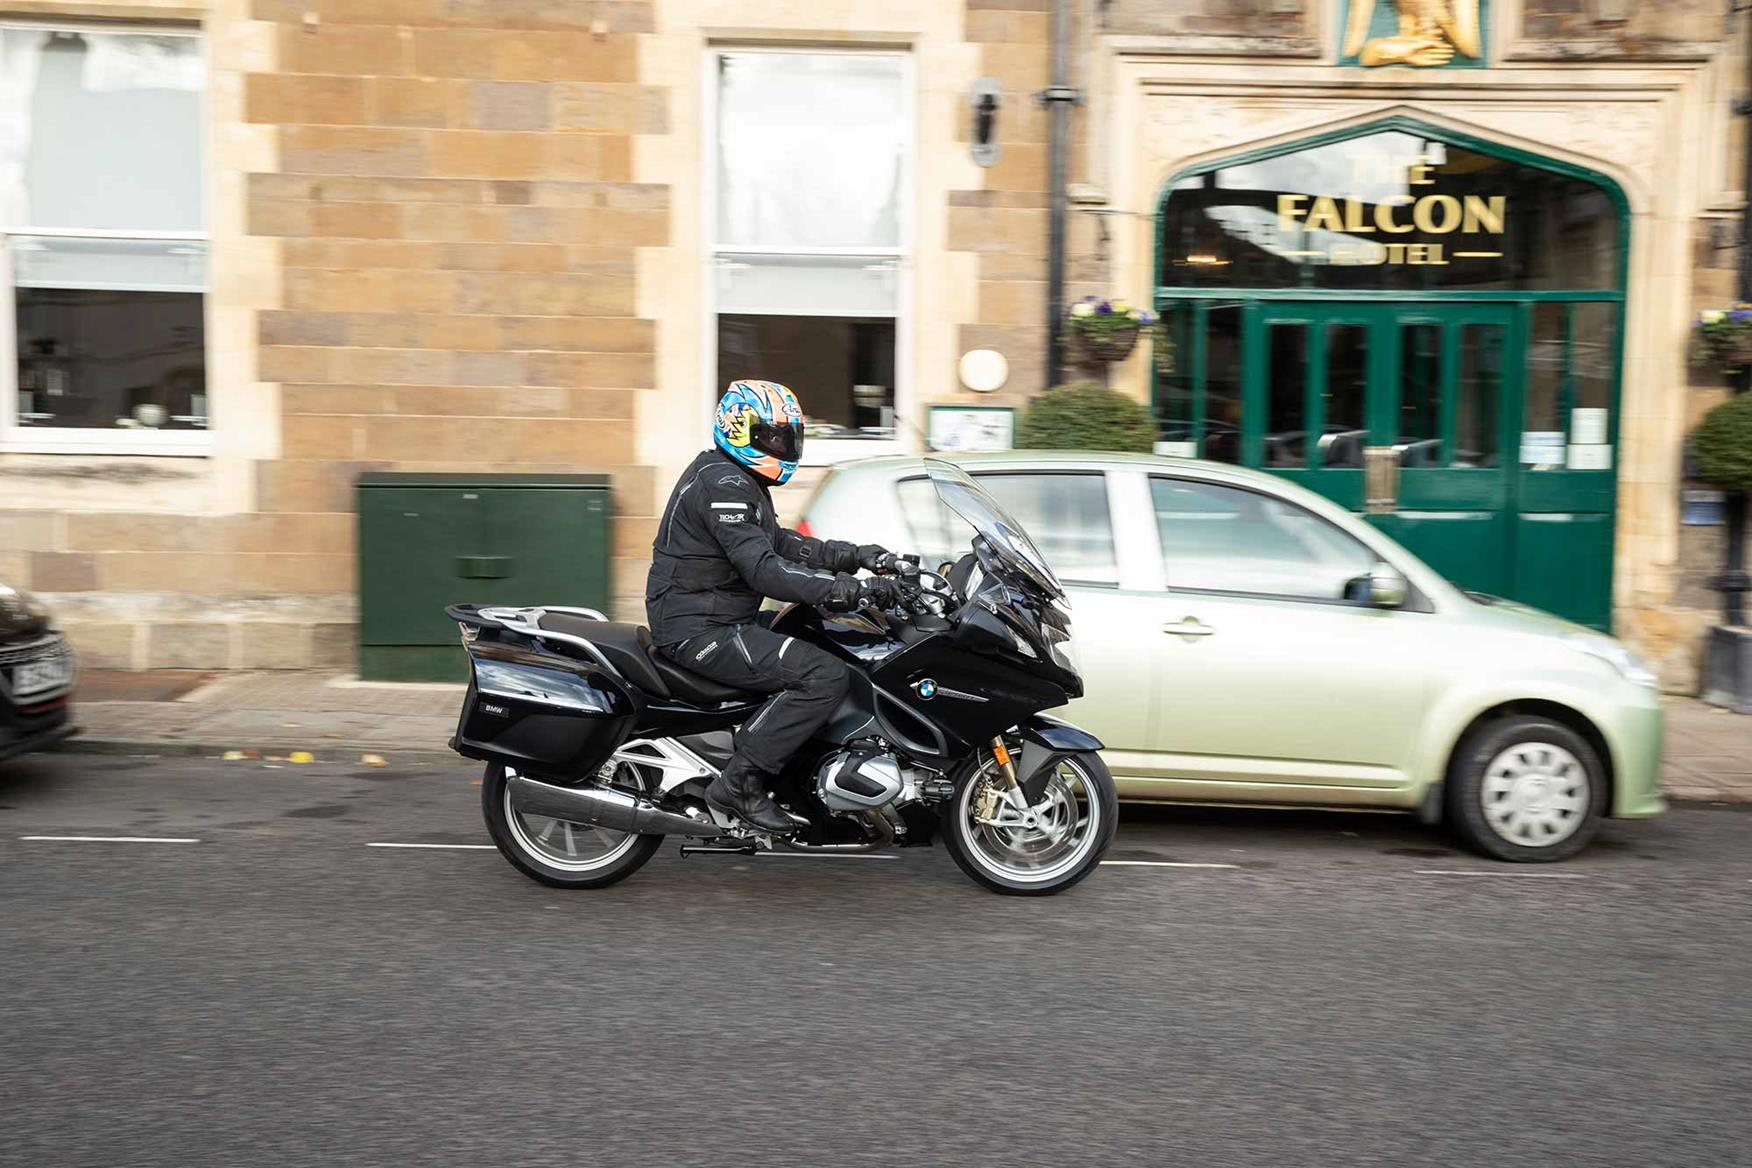 The BMW R1250RT in an urban environment